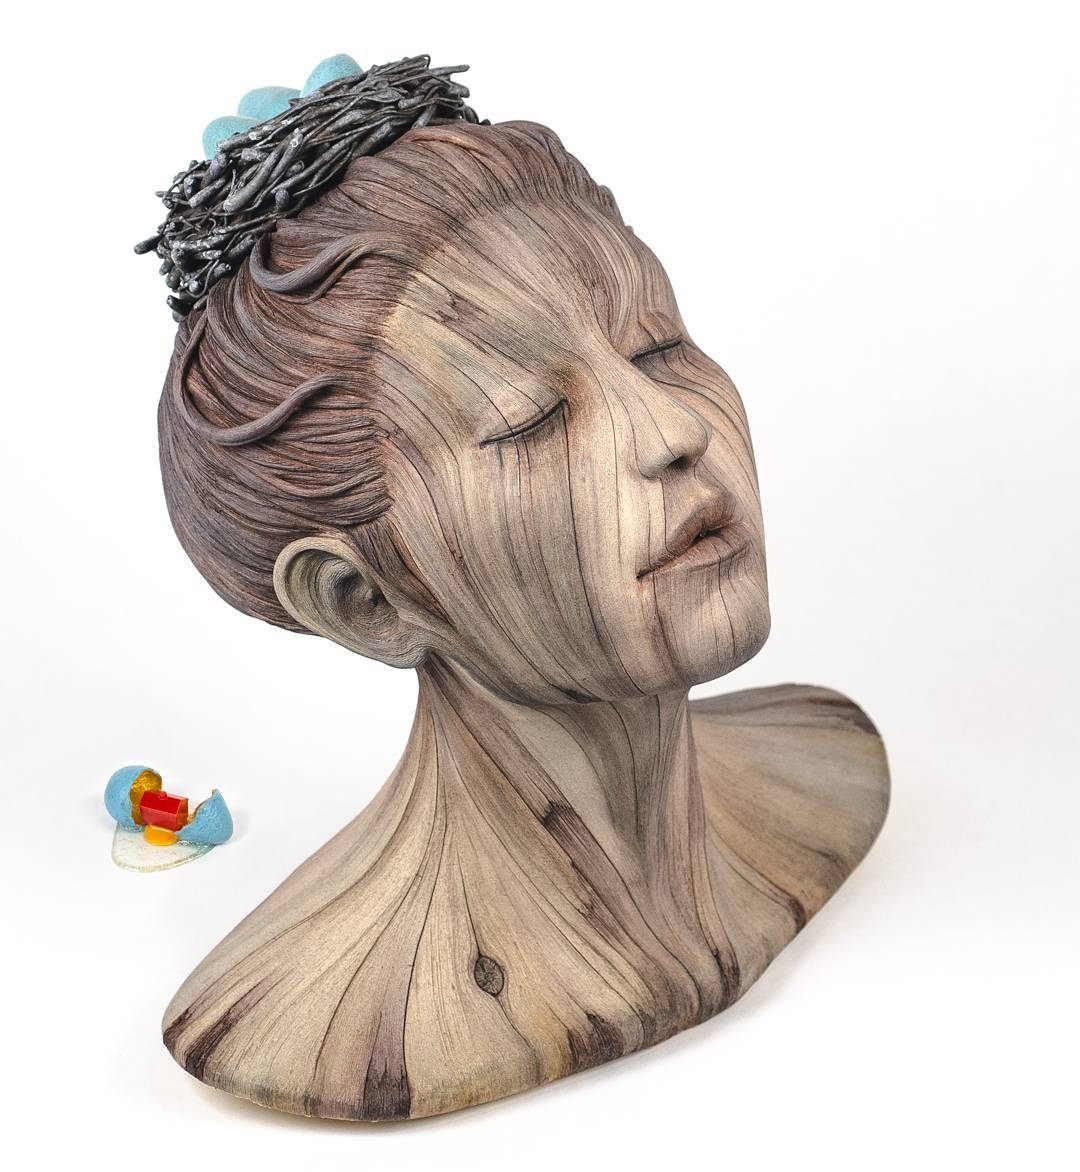 ceramic sculpture by christopher david white